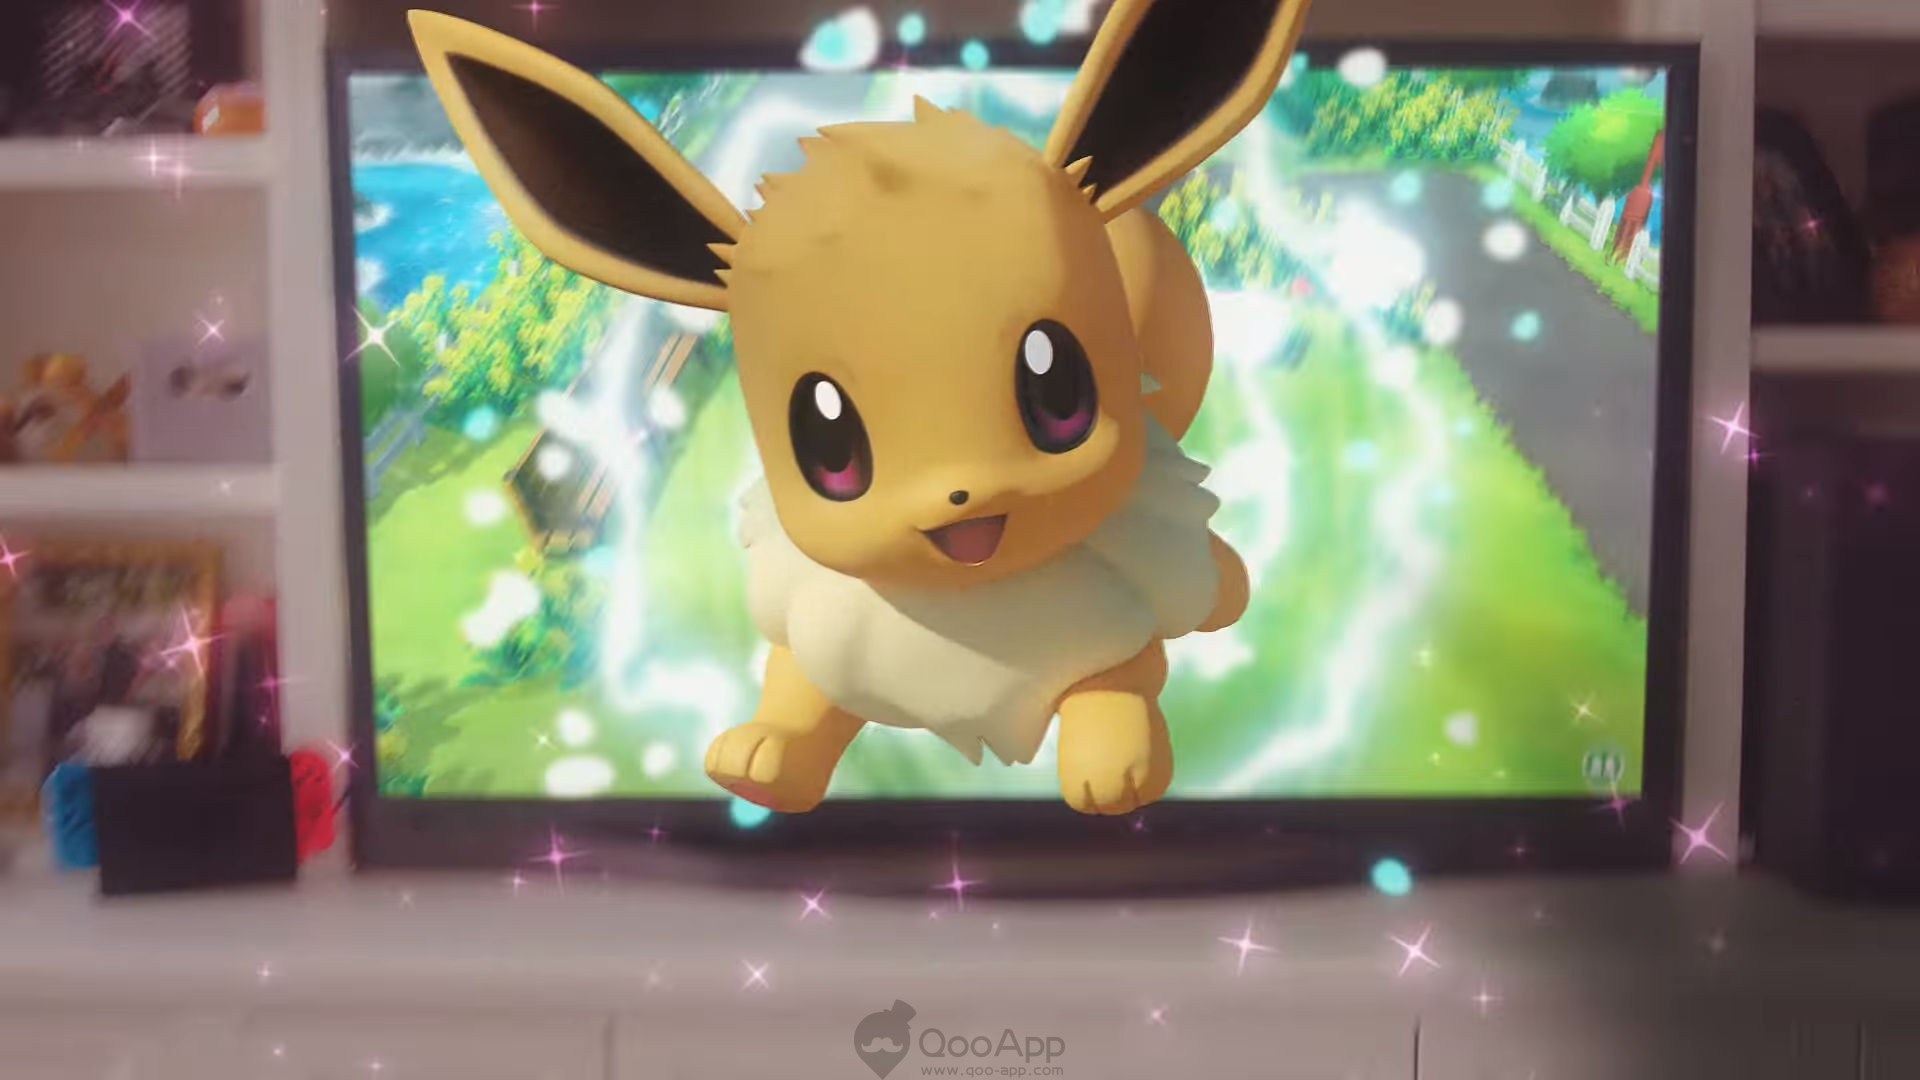 Fix Guide Lets Go Pikachu Eevee Crashing And Freezing Switch